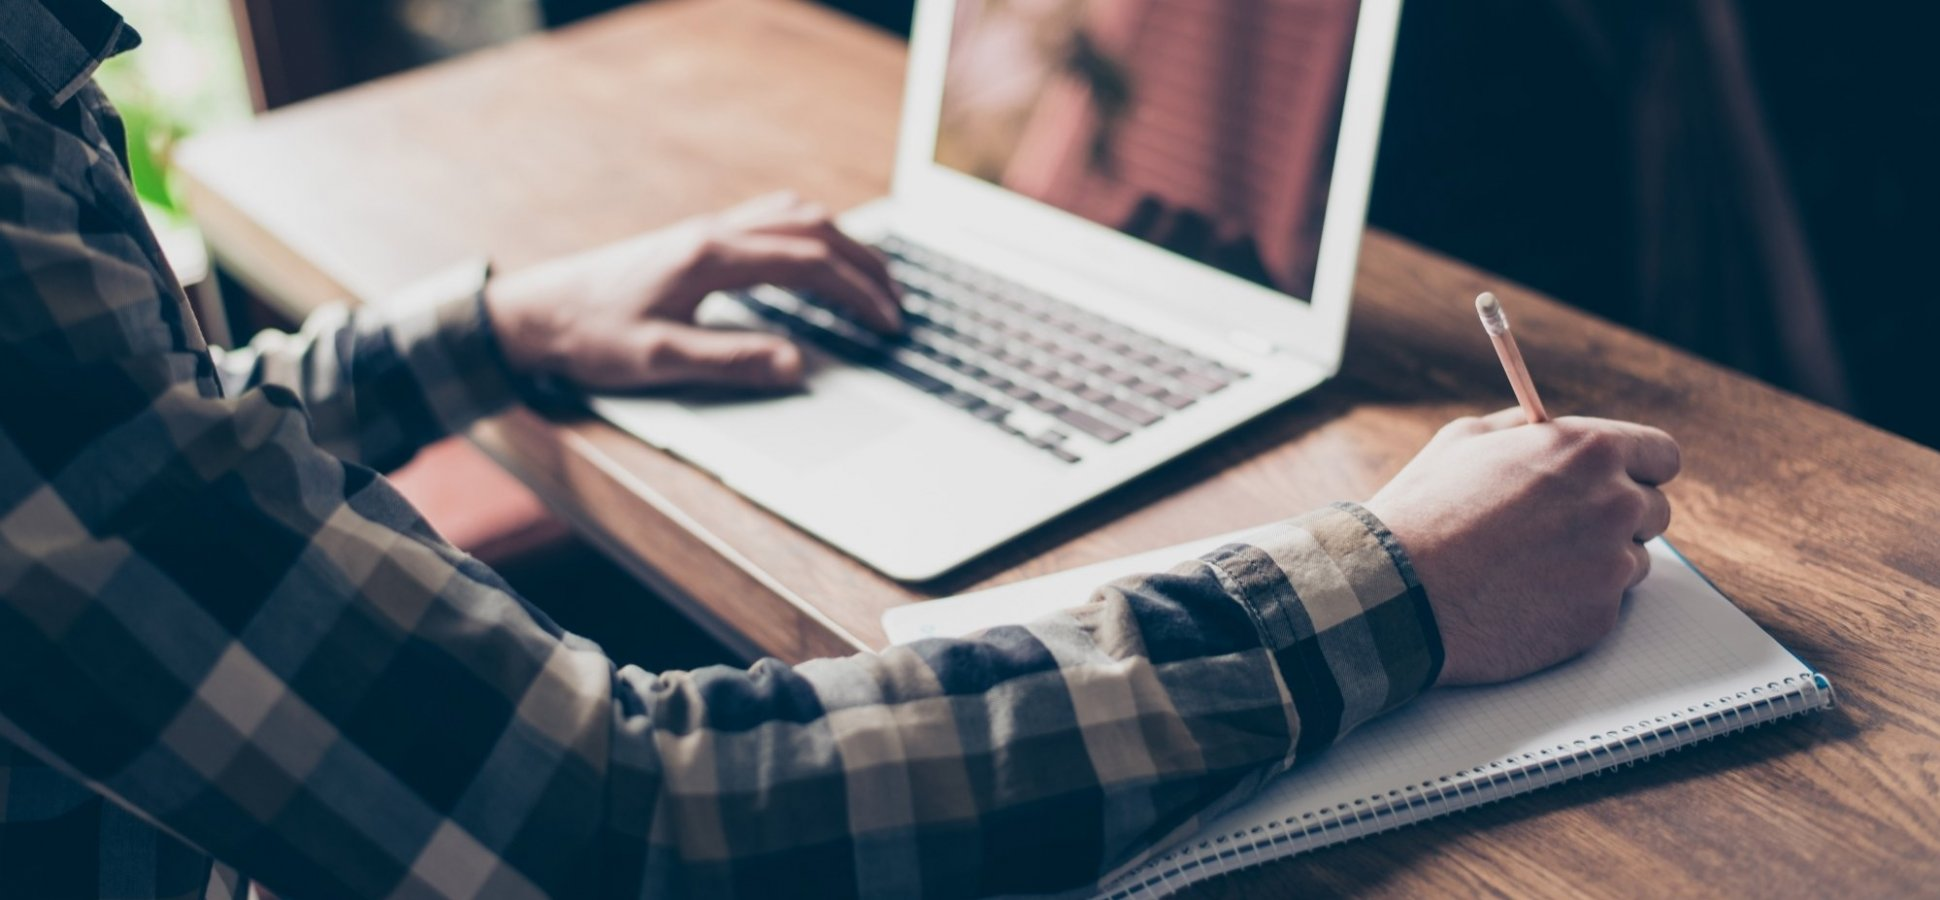 20 Online Courses That Will Make You More Successful in 2020